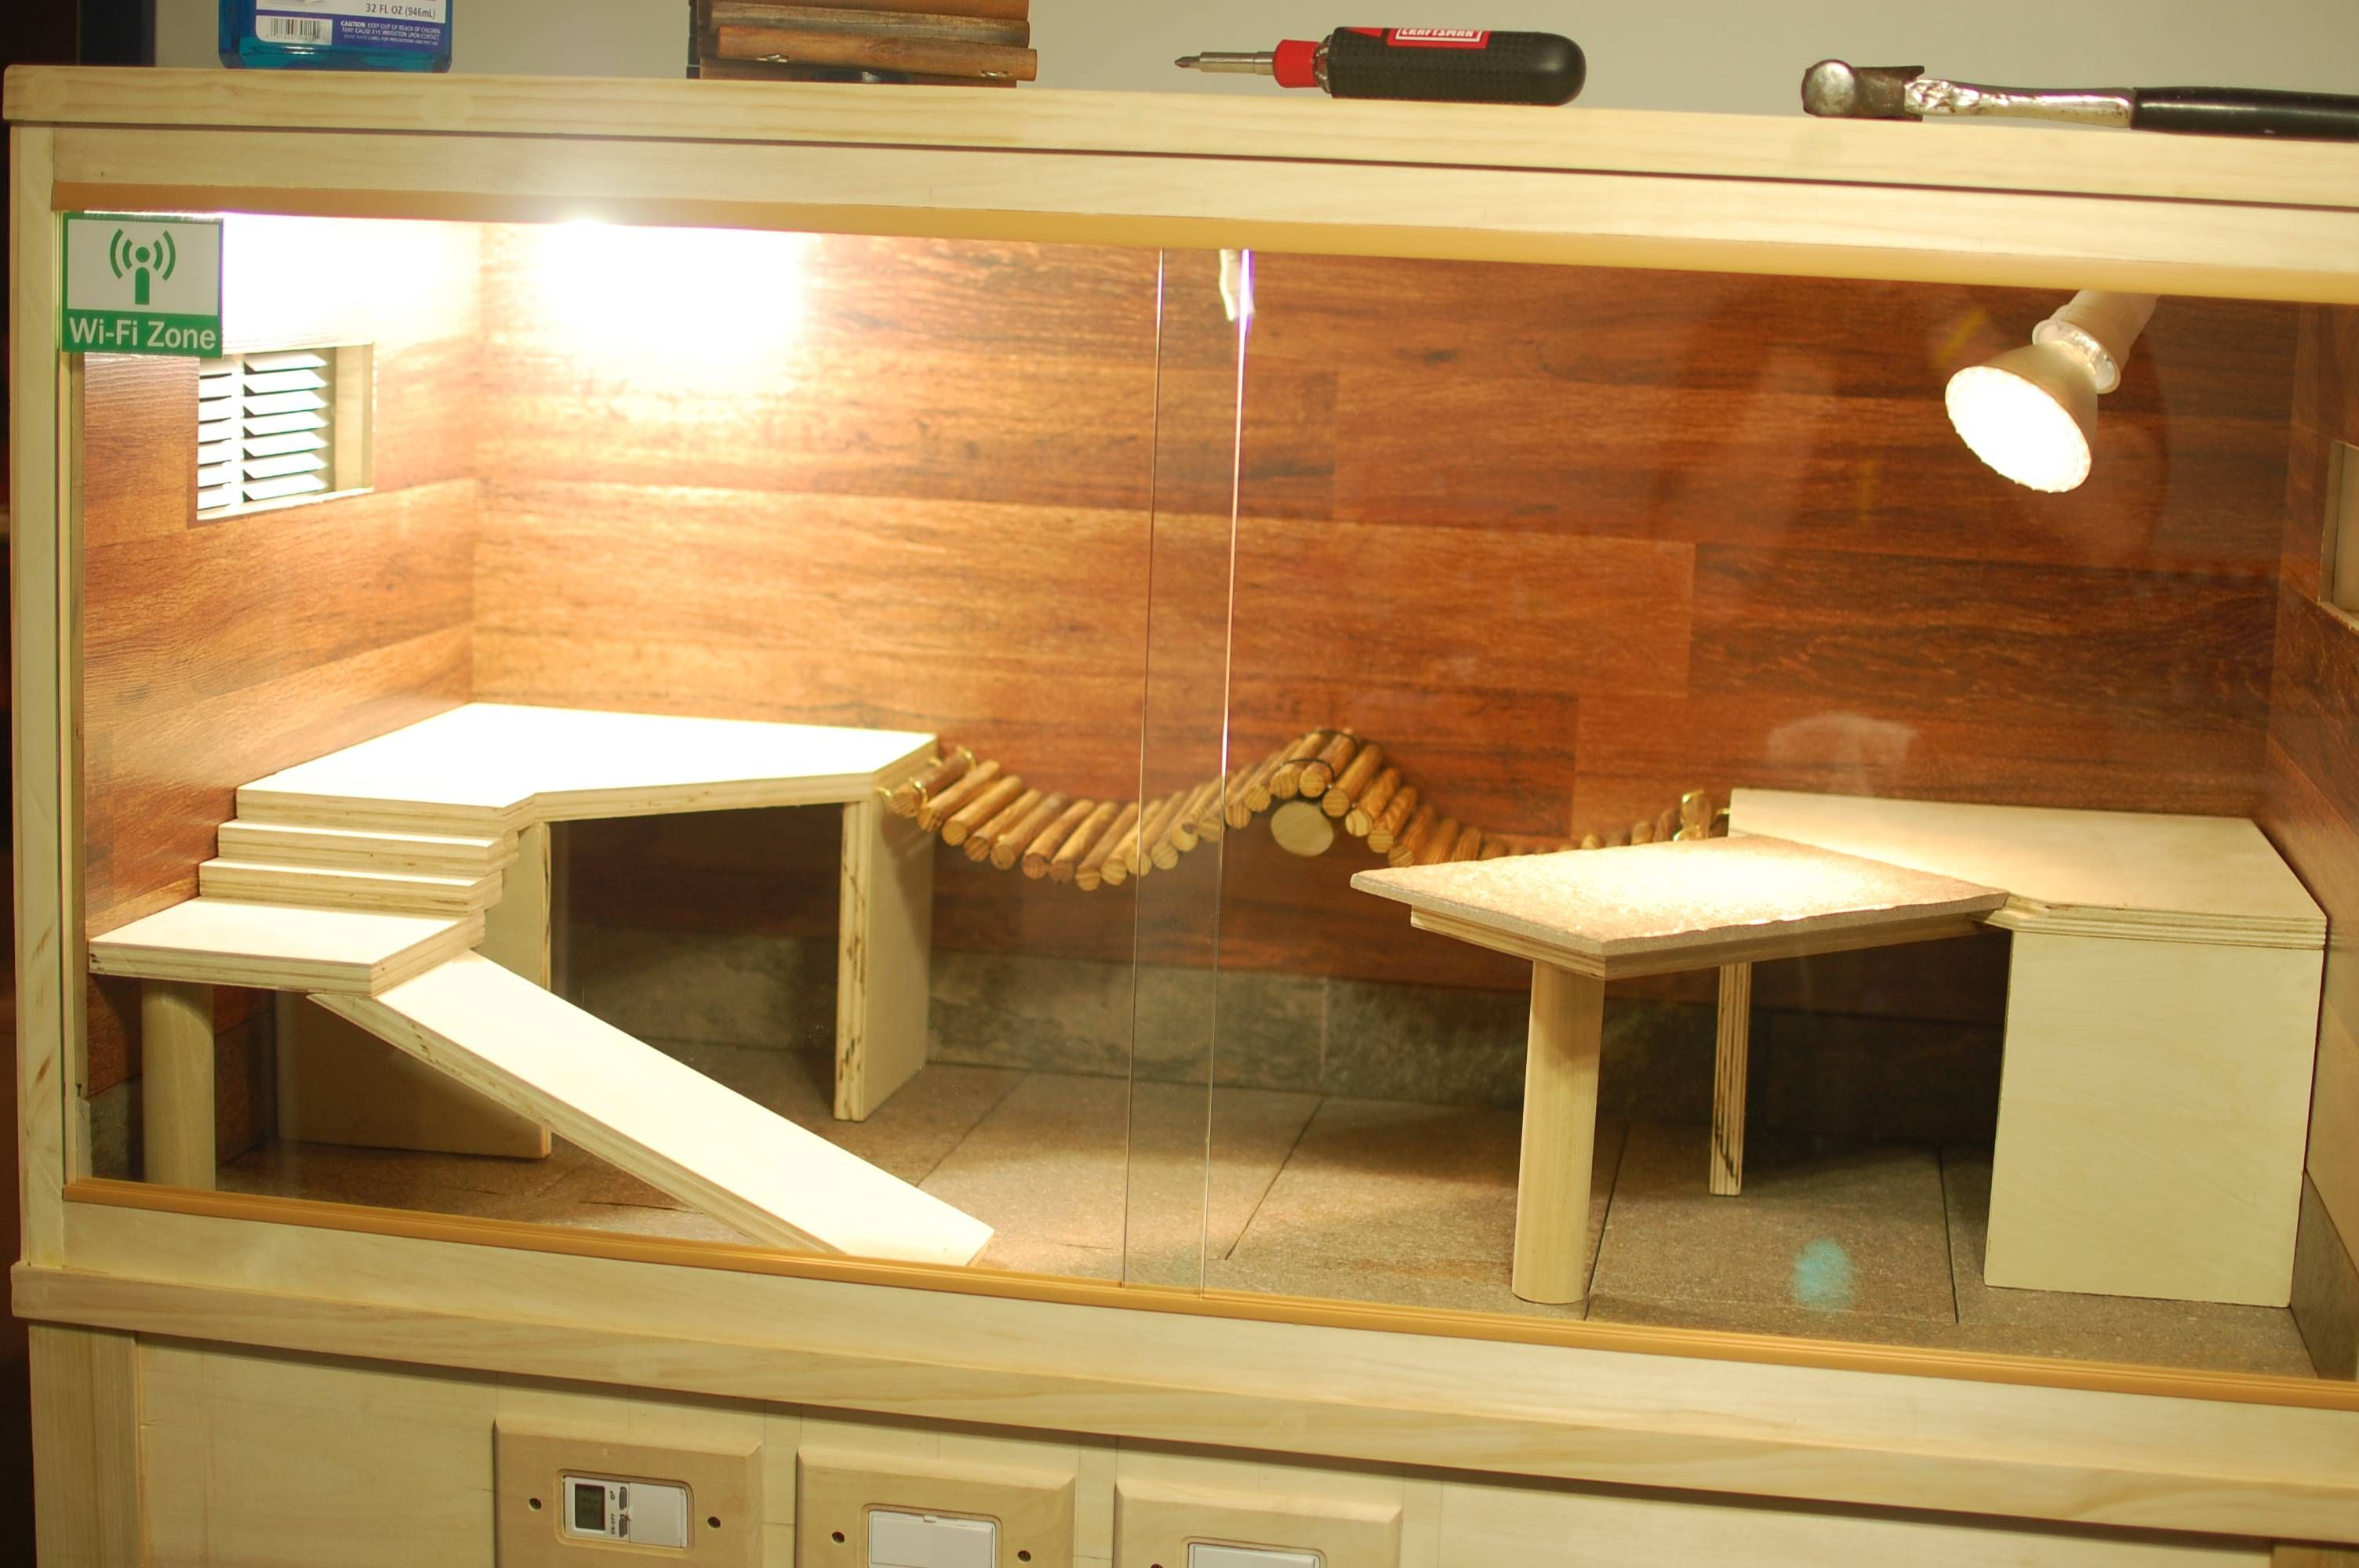 Build ramps and different levels using wood for reptiles